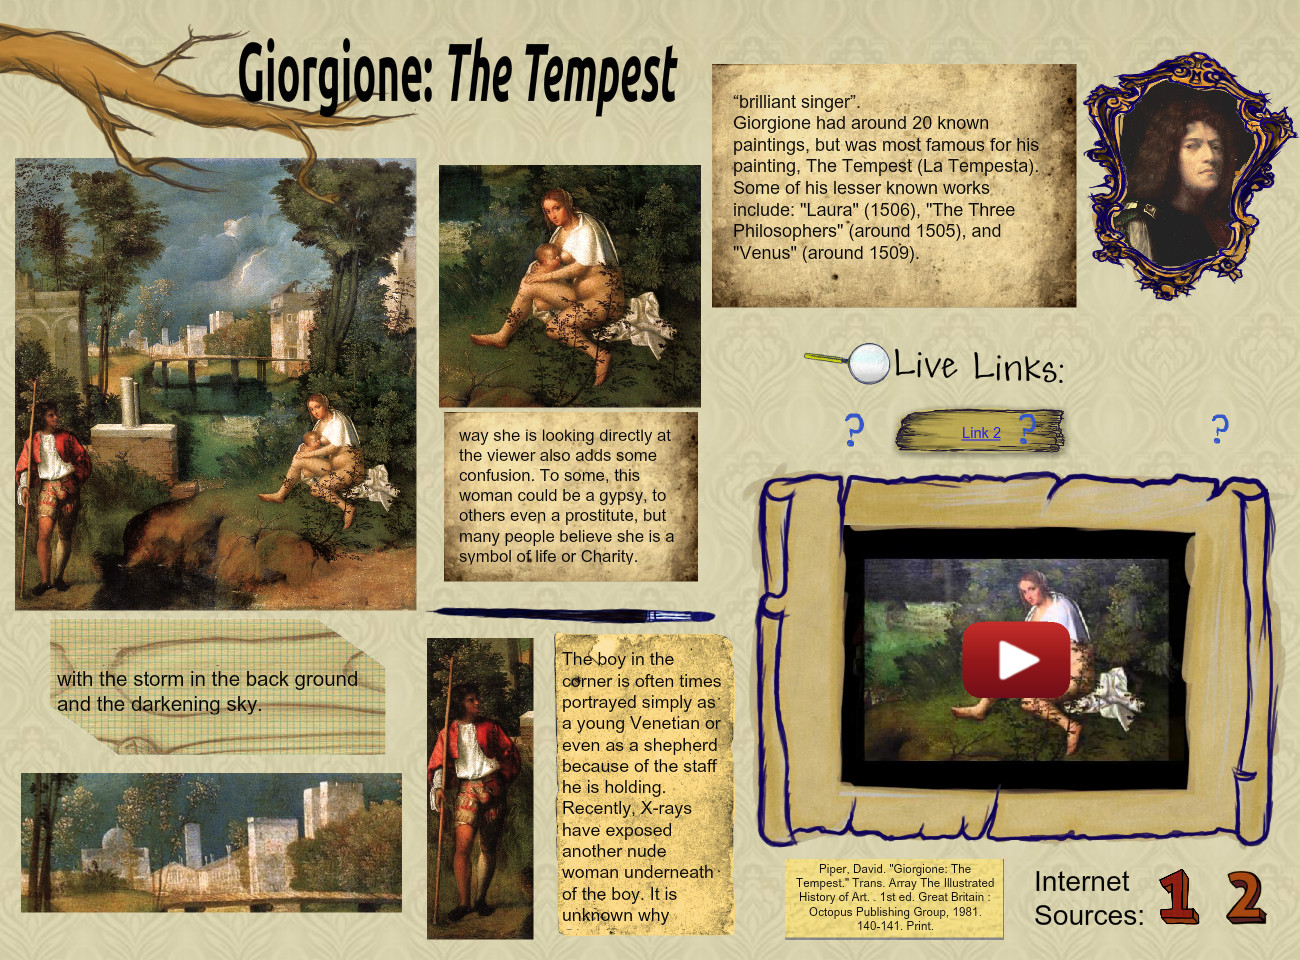 [2013] Kaleigh Merritt (The Word:  2013-2014, Default class, Art History 20132014): Giorgione: The T